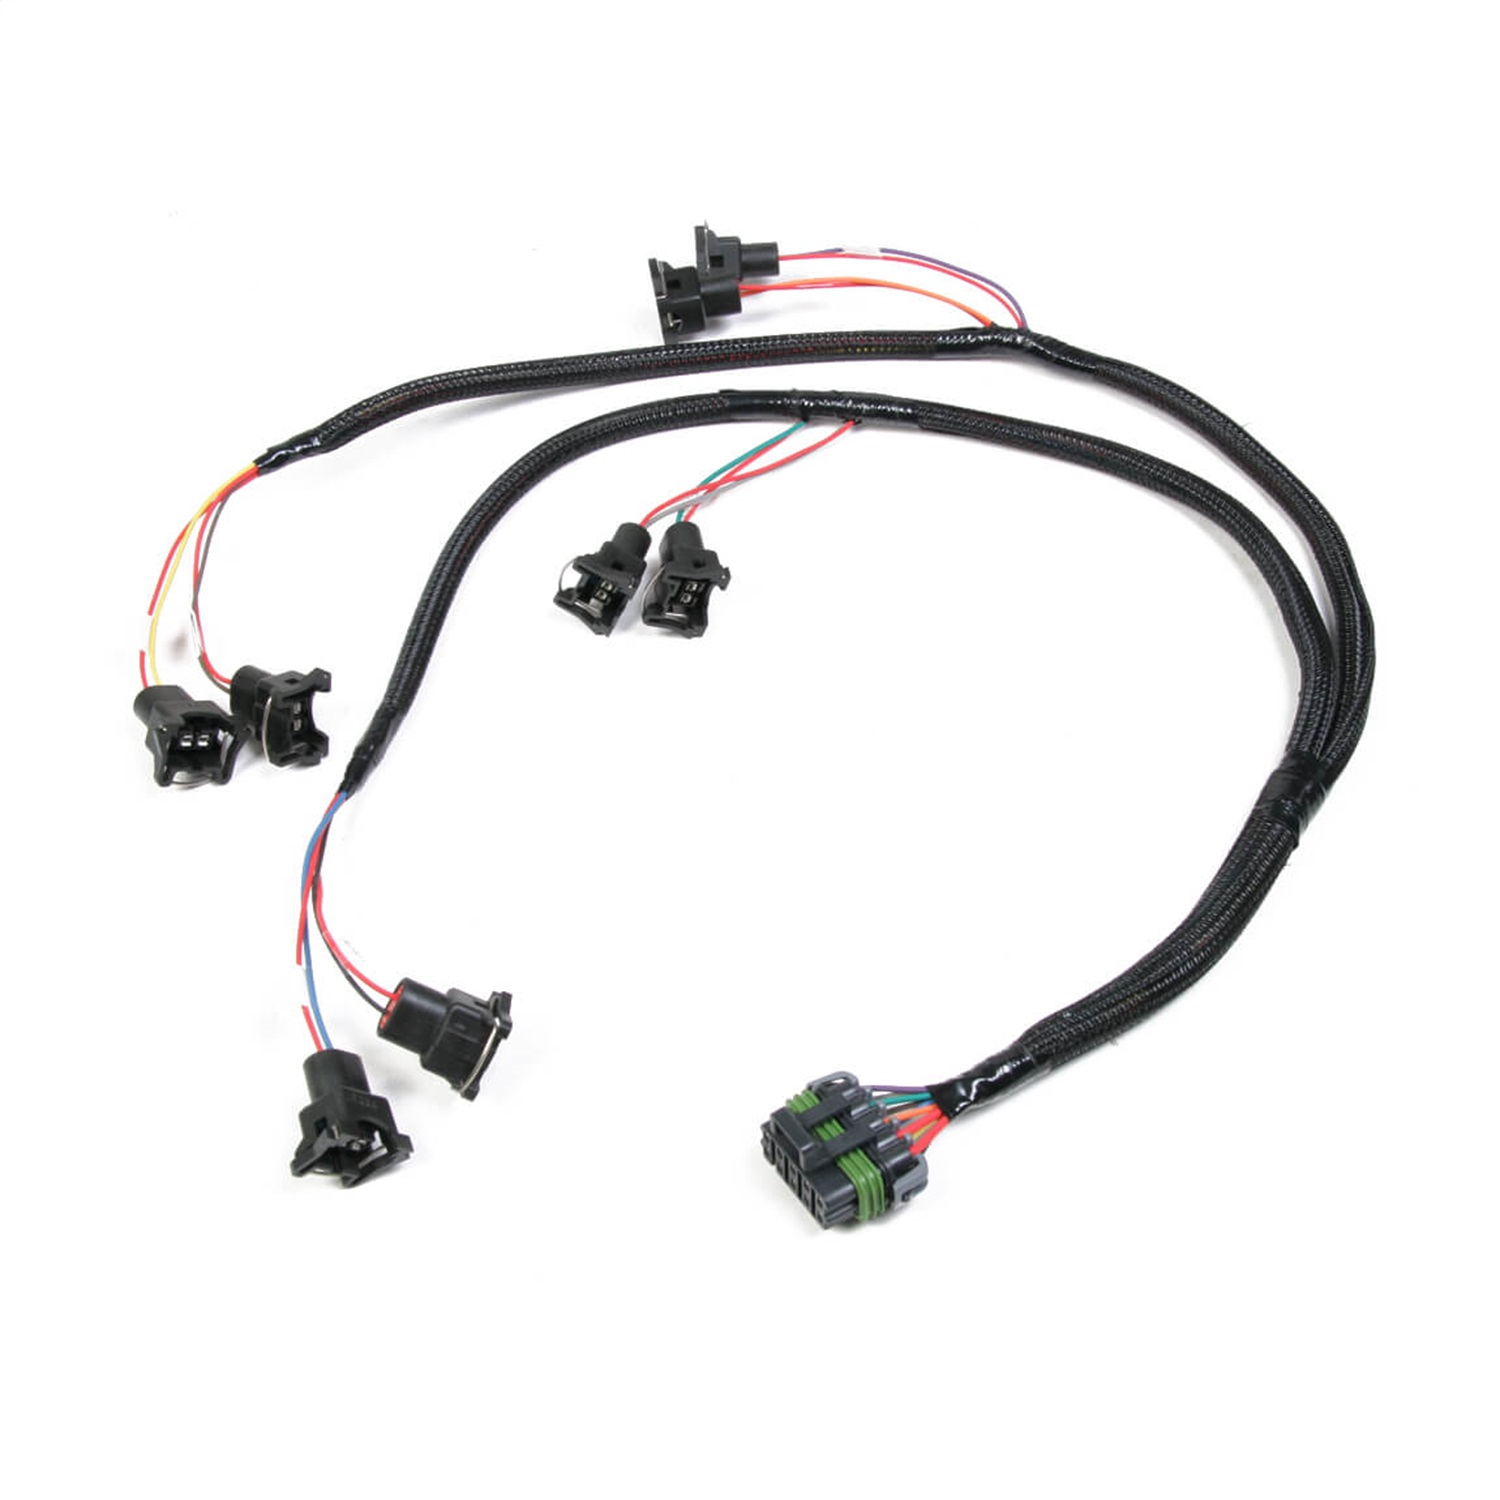 Holley Efi 558 200 Fuel Injection Harness